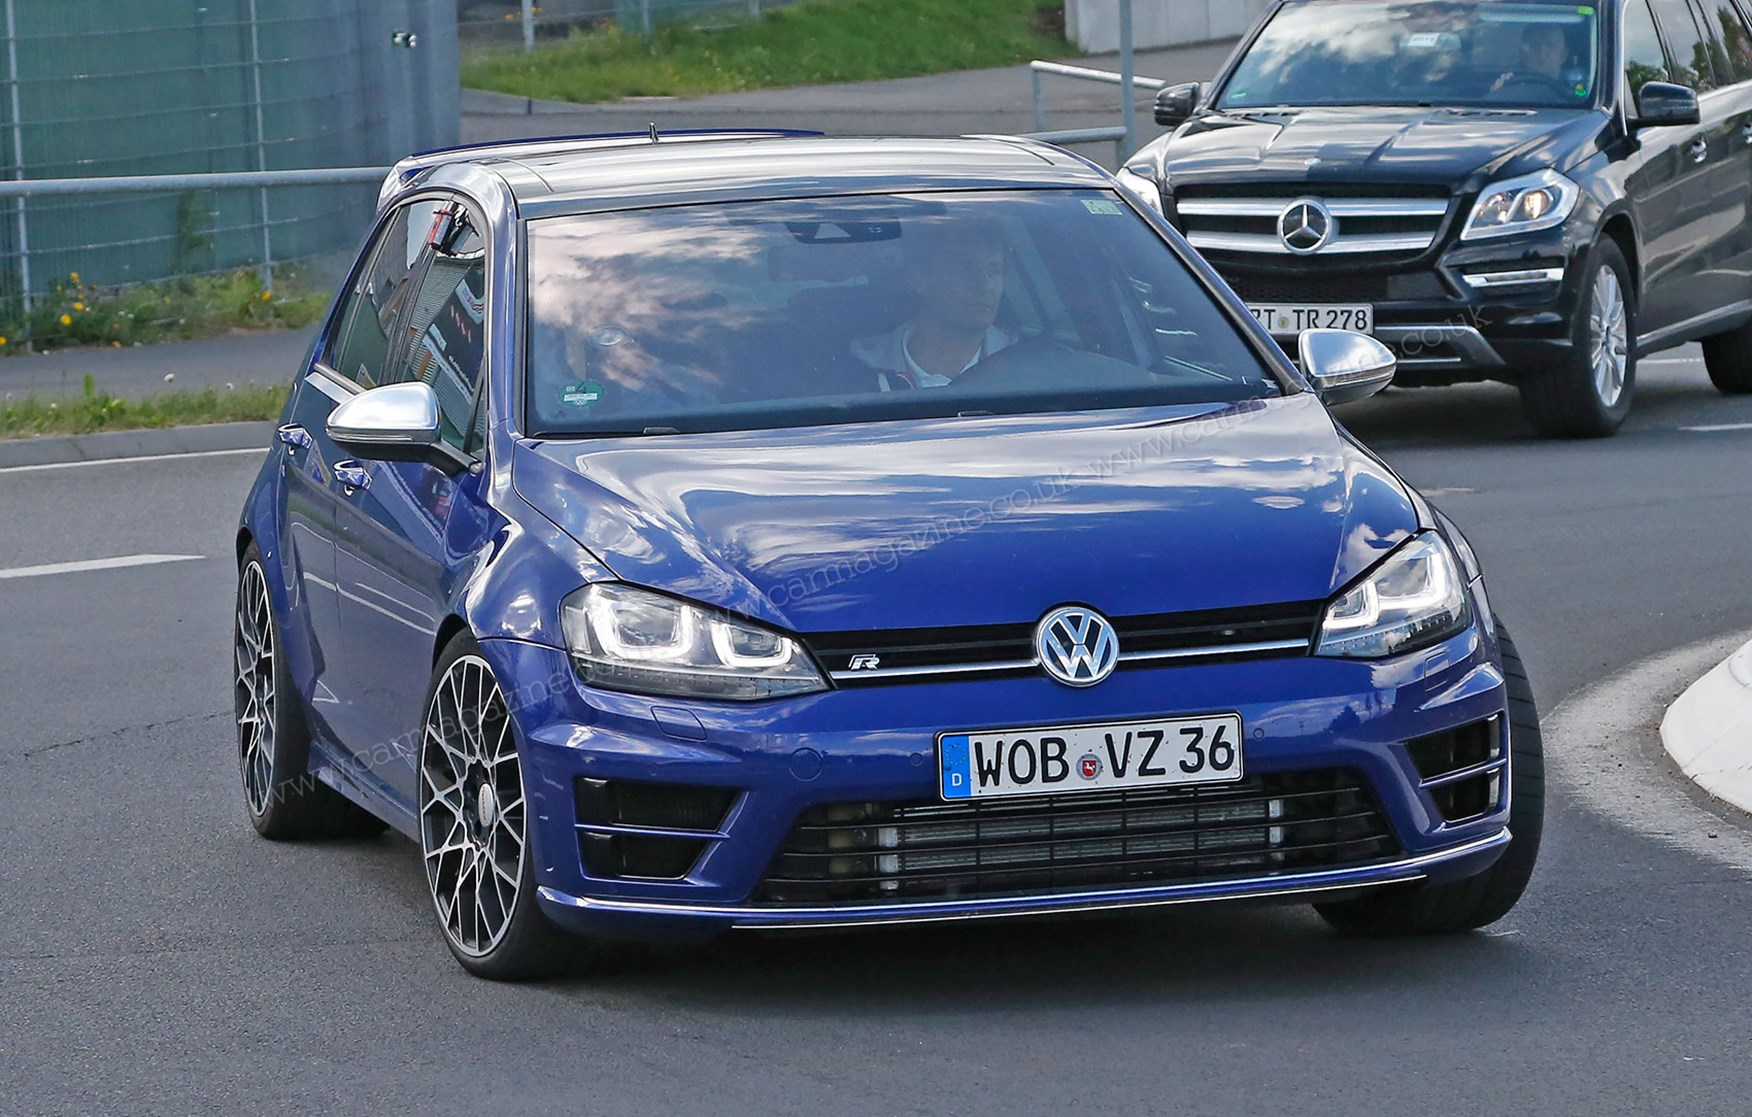 Vw Golf R420 Spy Photos Best Look Yet At 2016 S Super